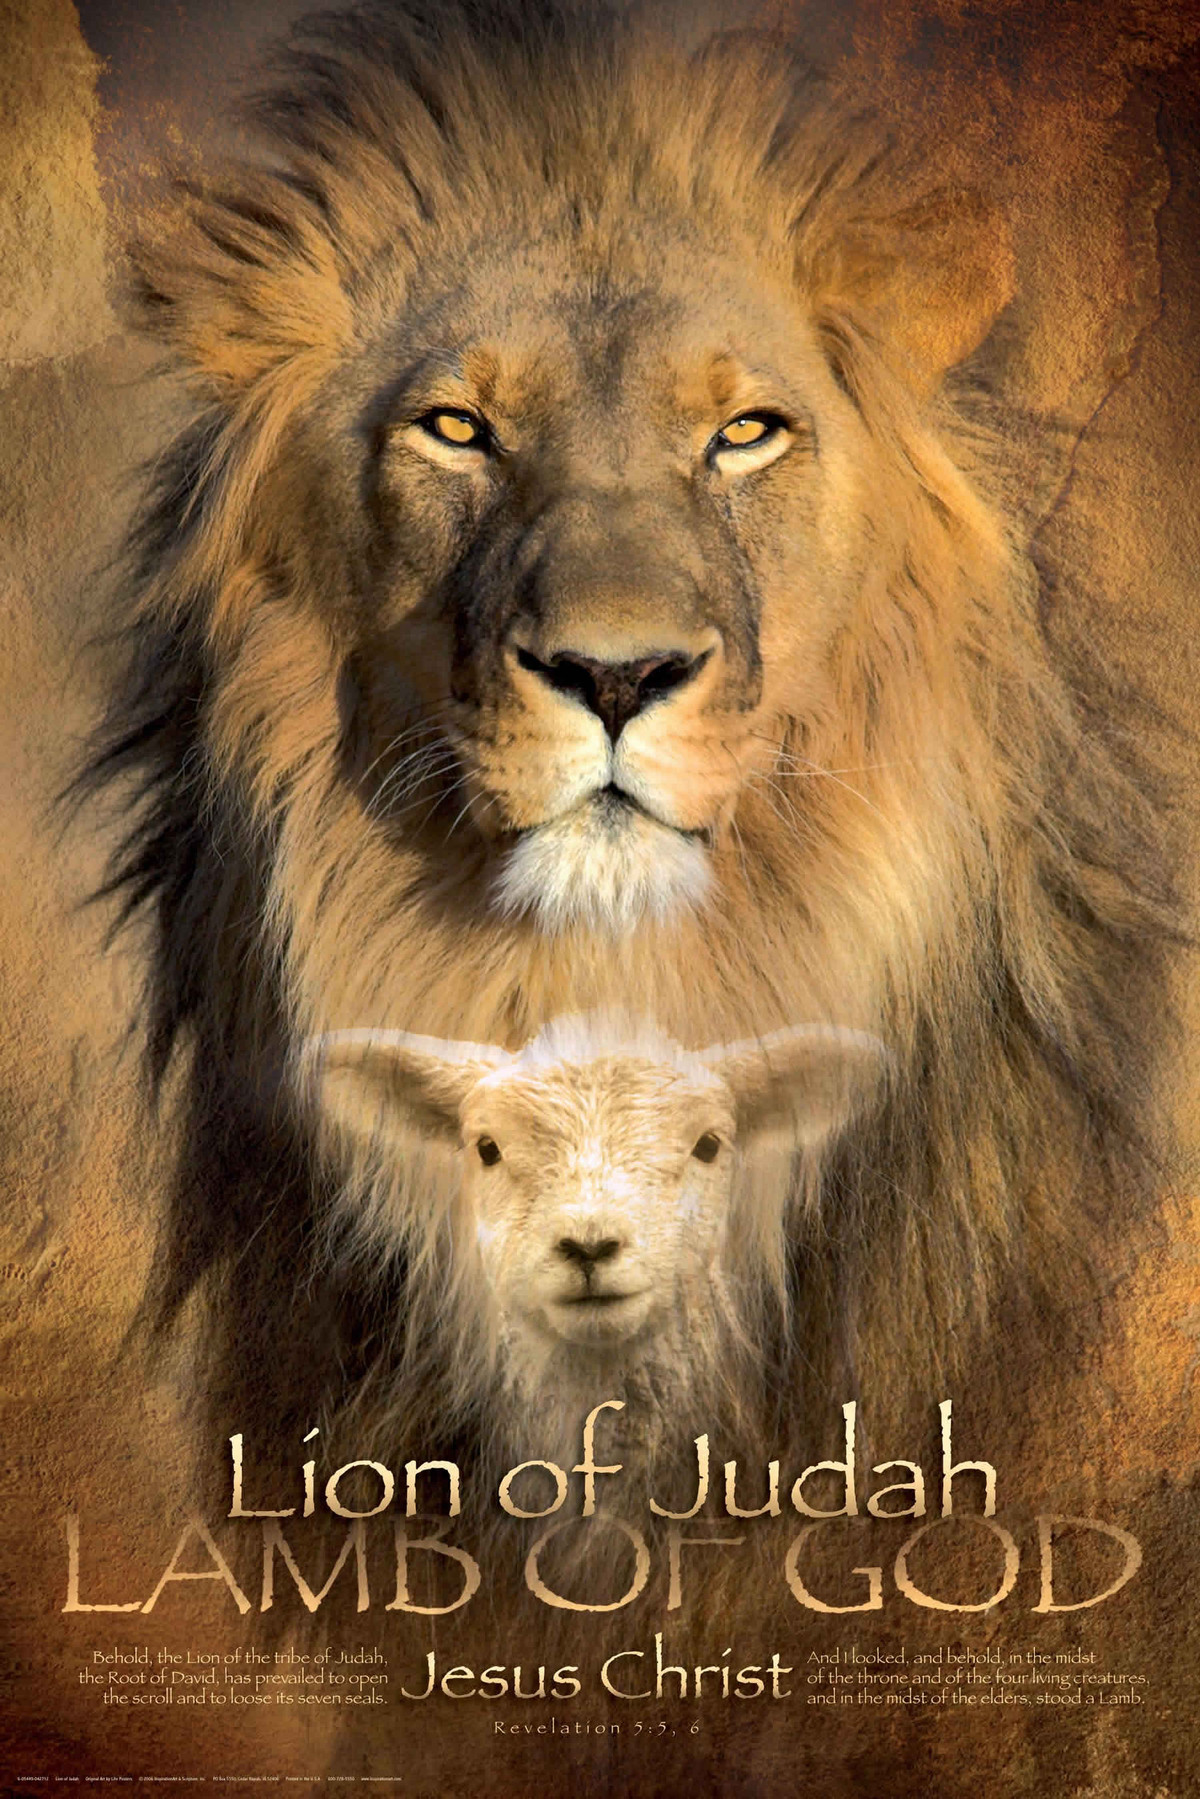 The Lion of Judah - Movie Poster #1 (Original)